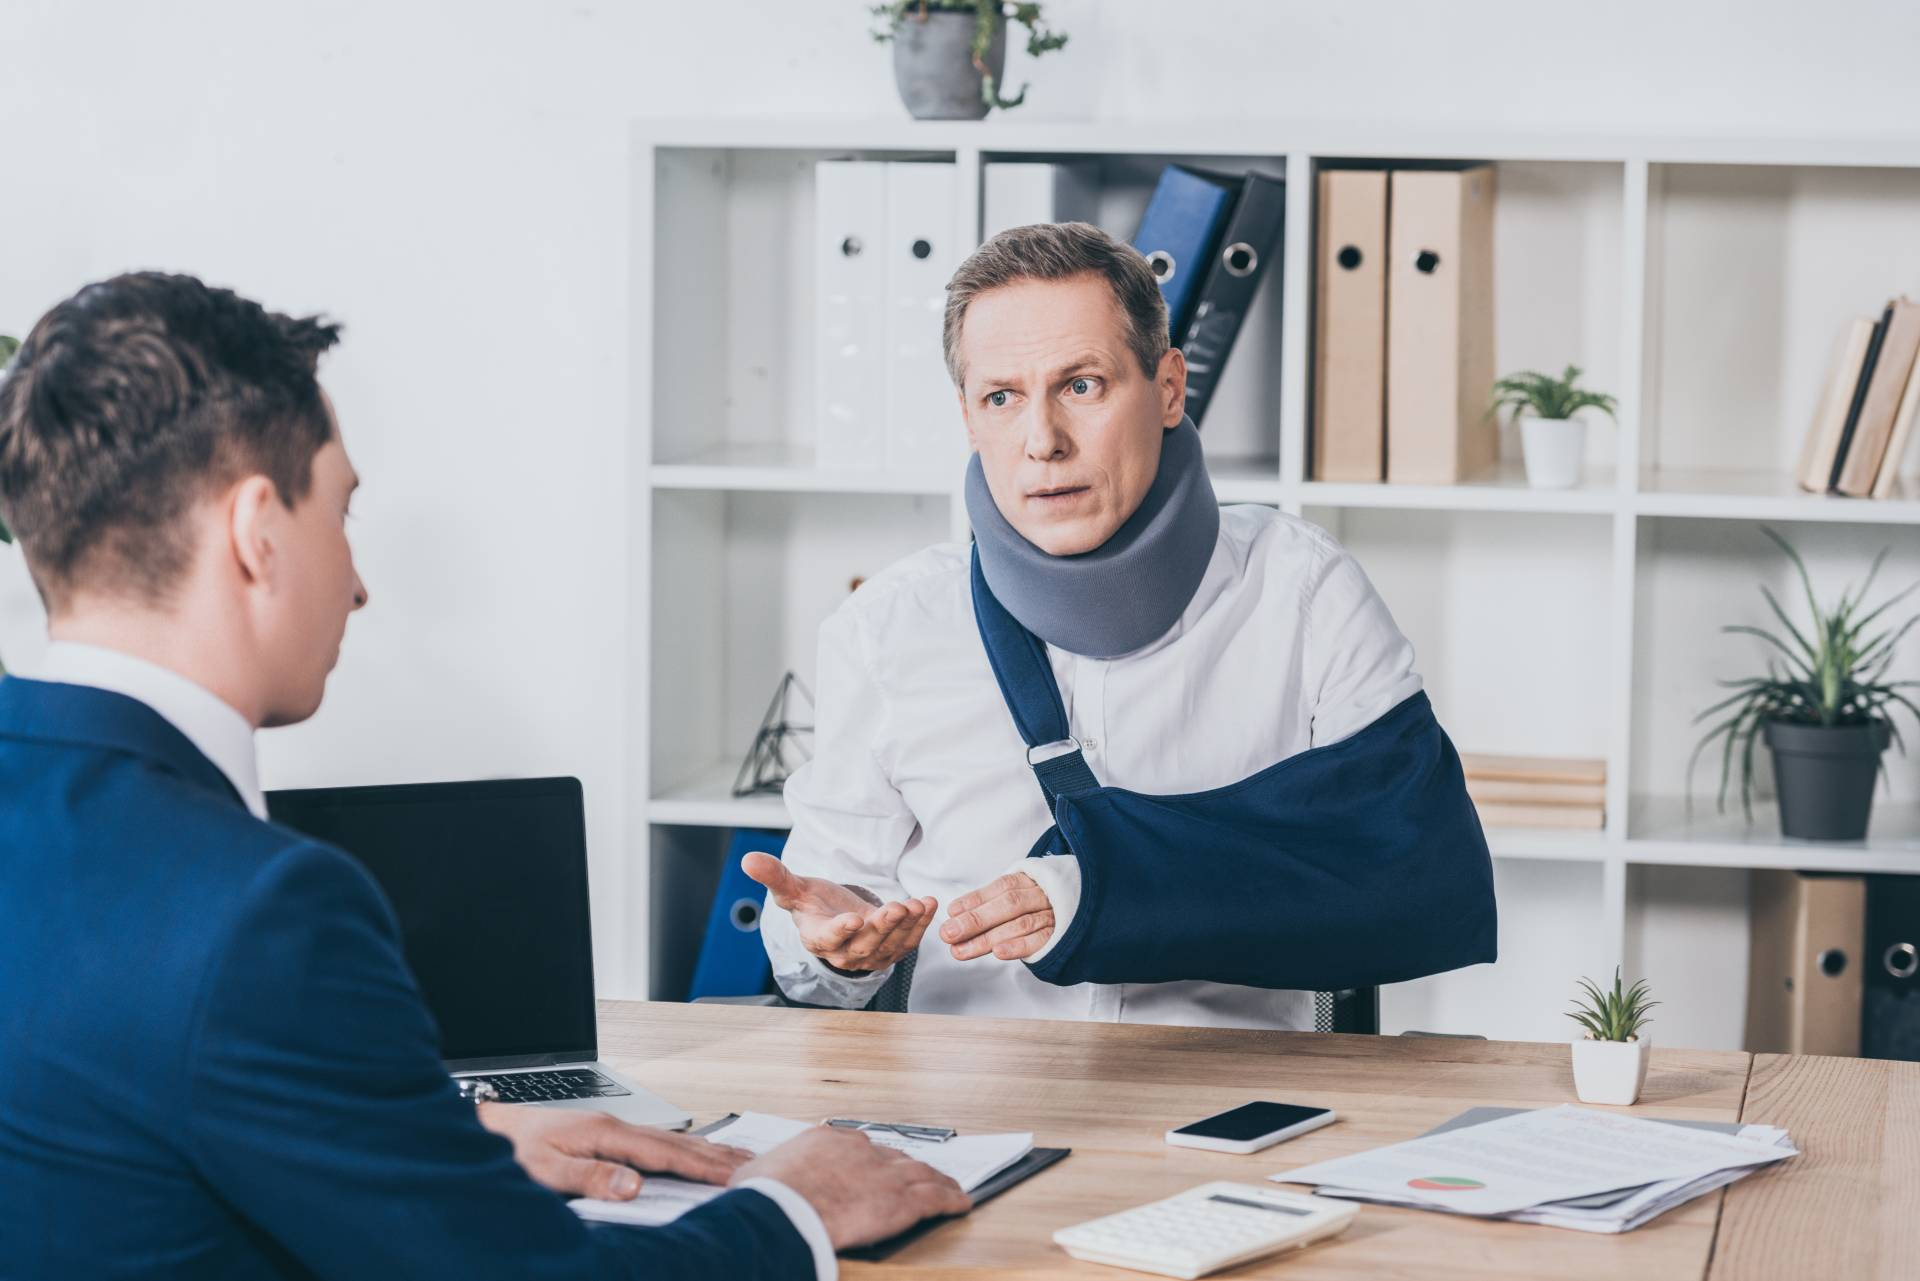 Our lawyers at the angell law firm care about your recovery.